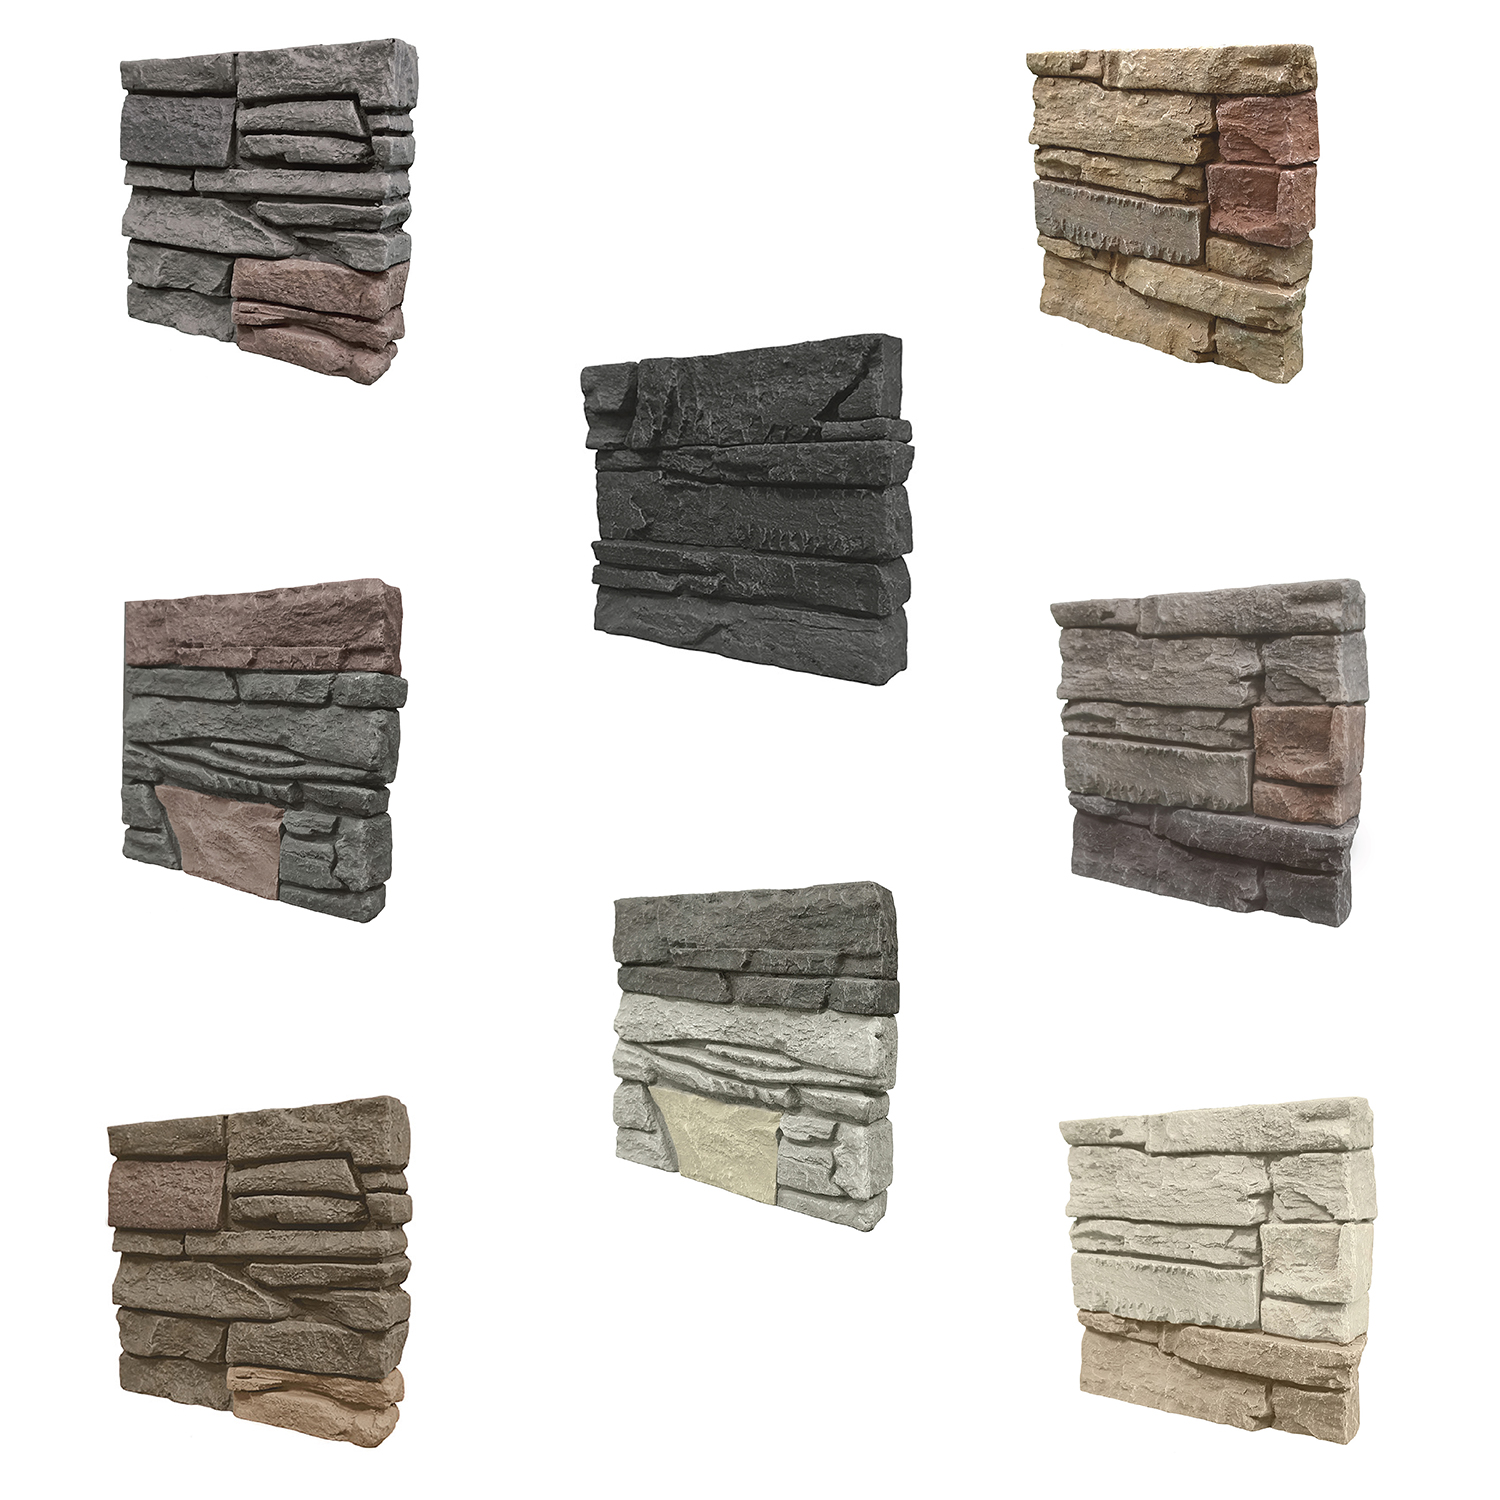 GenStone Stacked Stone Samples